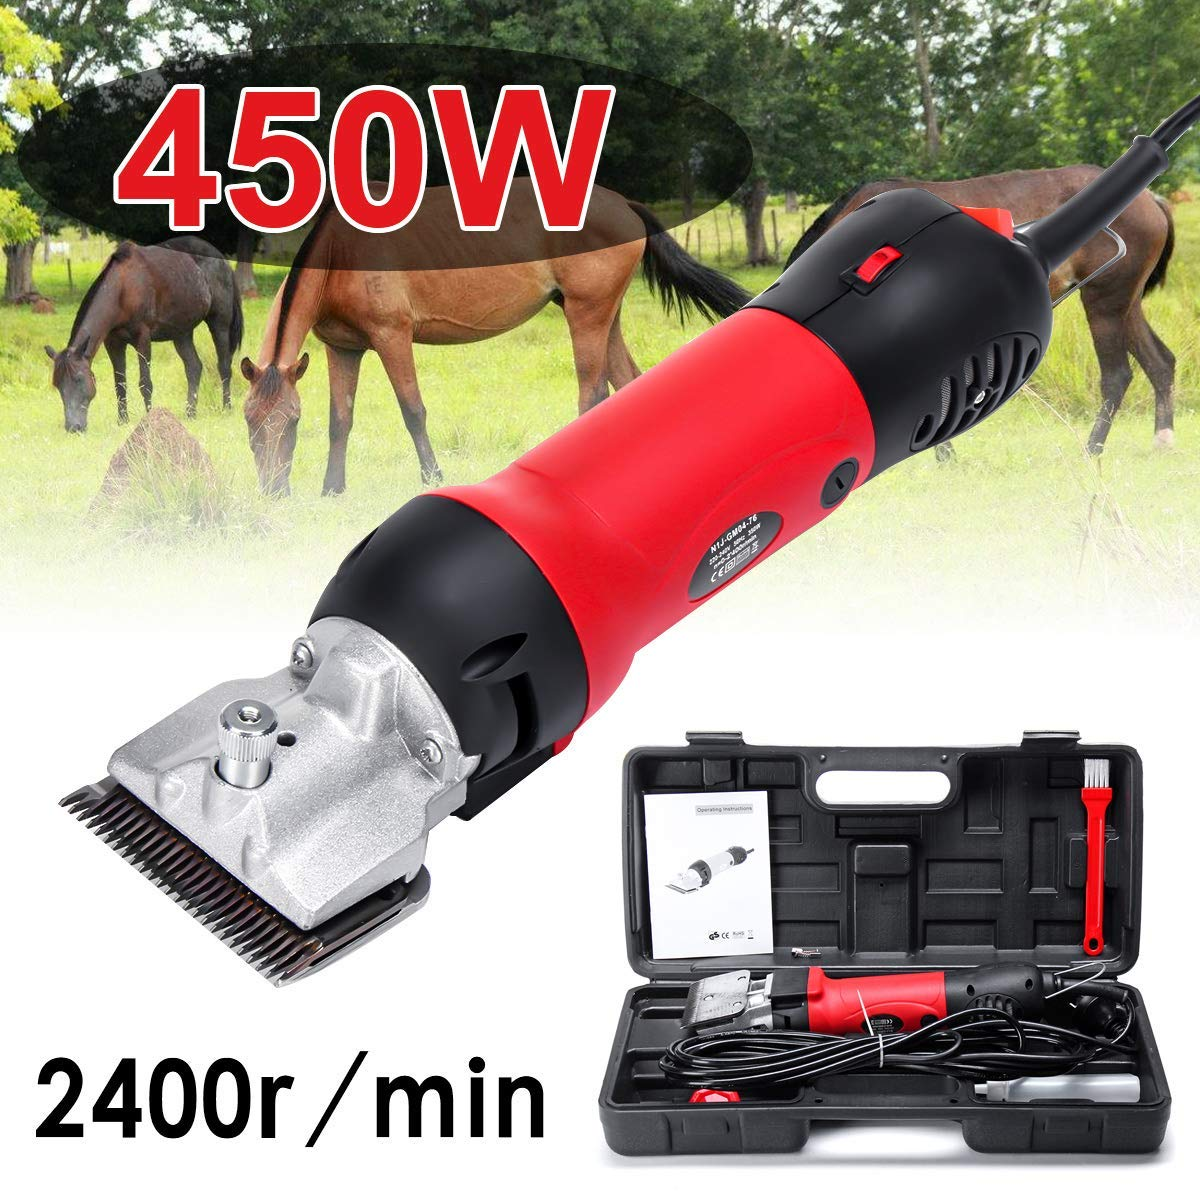 HONGHUIYU I Electric Horse Clippers,Livestock Shears 110-240V 450W 2400R Min 6 Adjustable Speed For Equine,Cattle,Camel